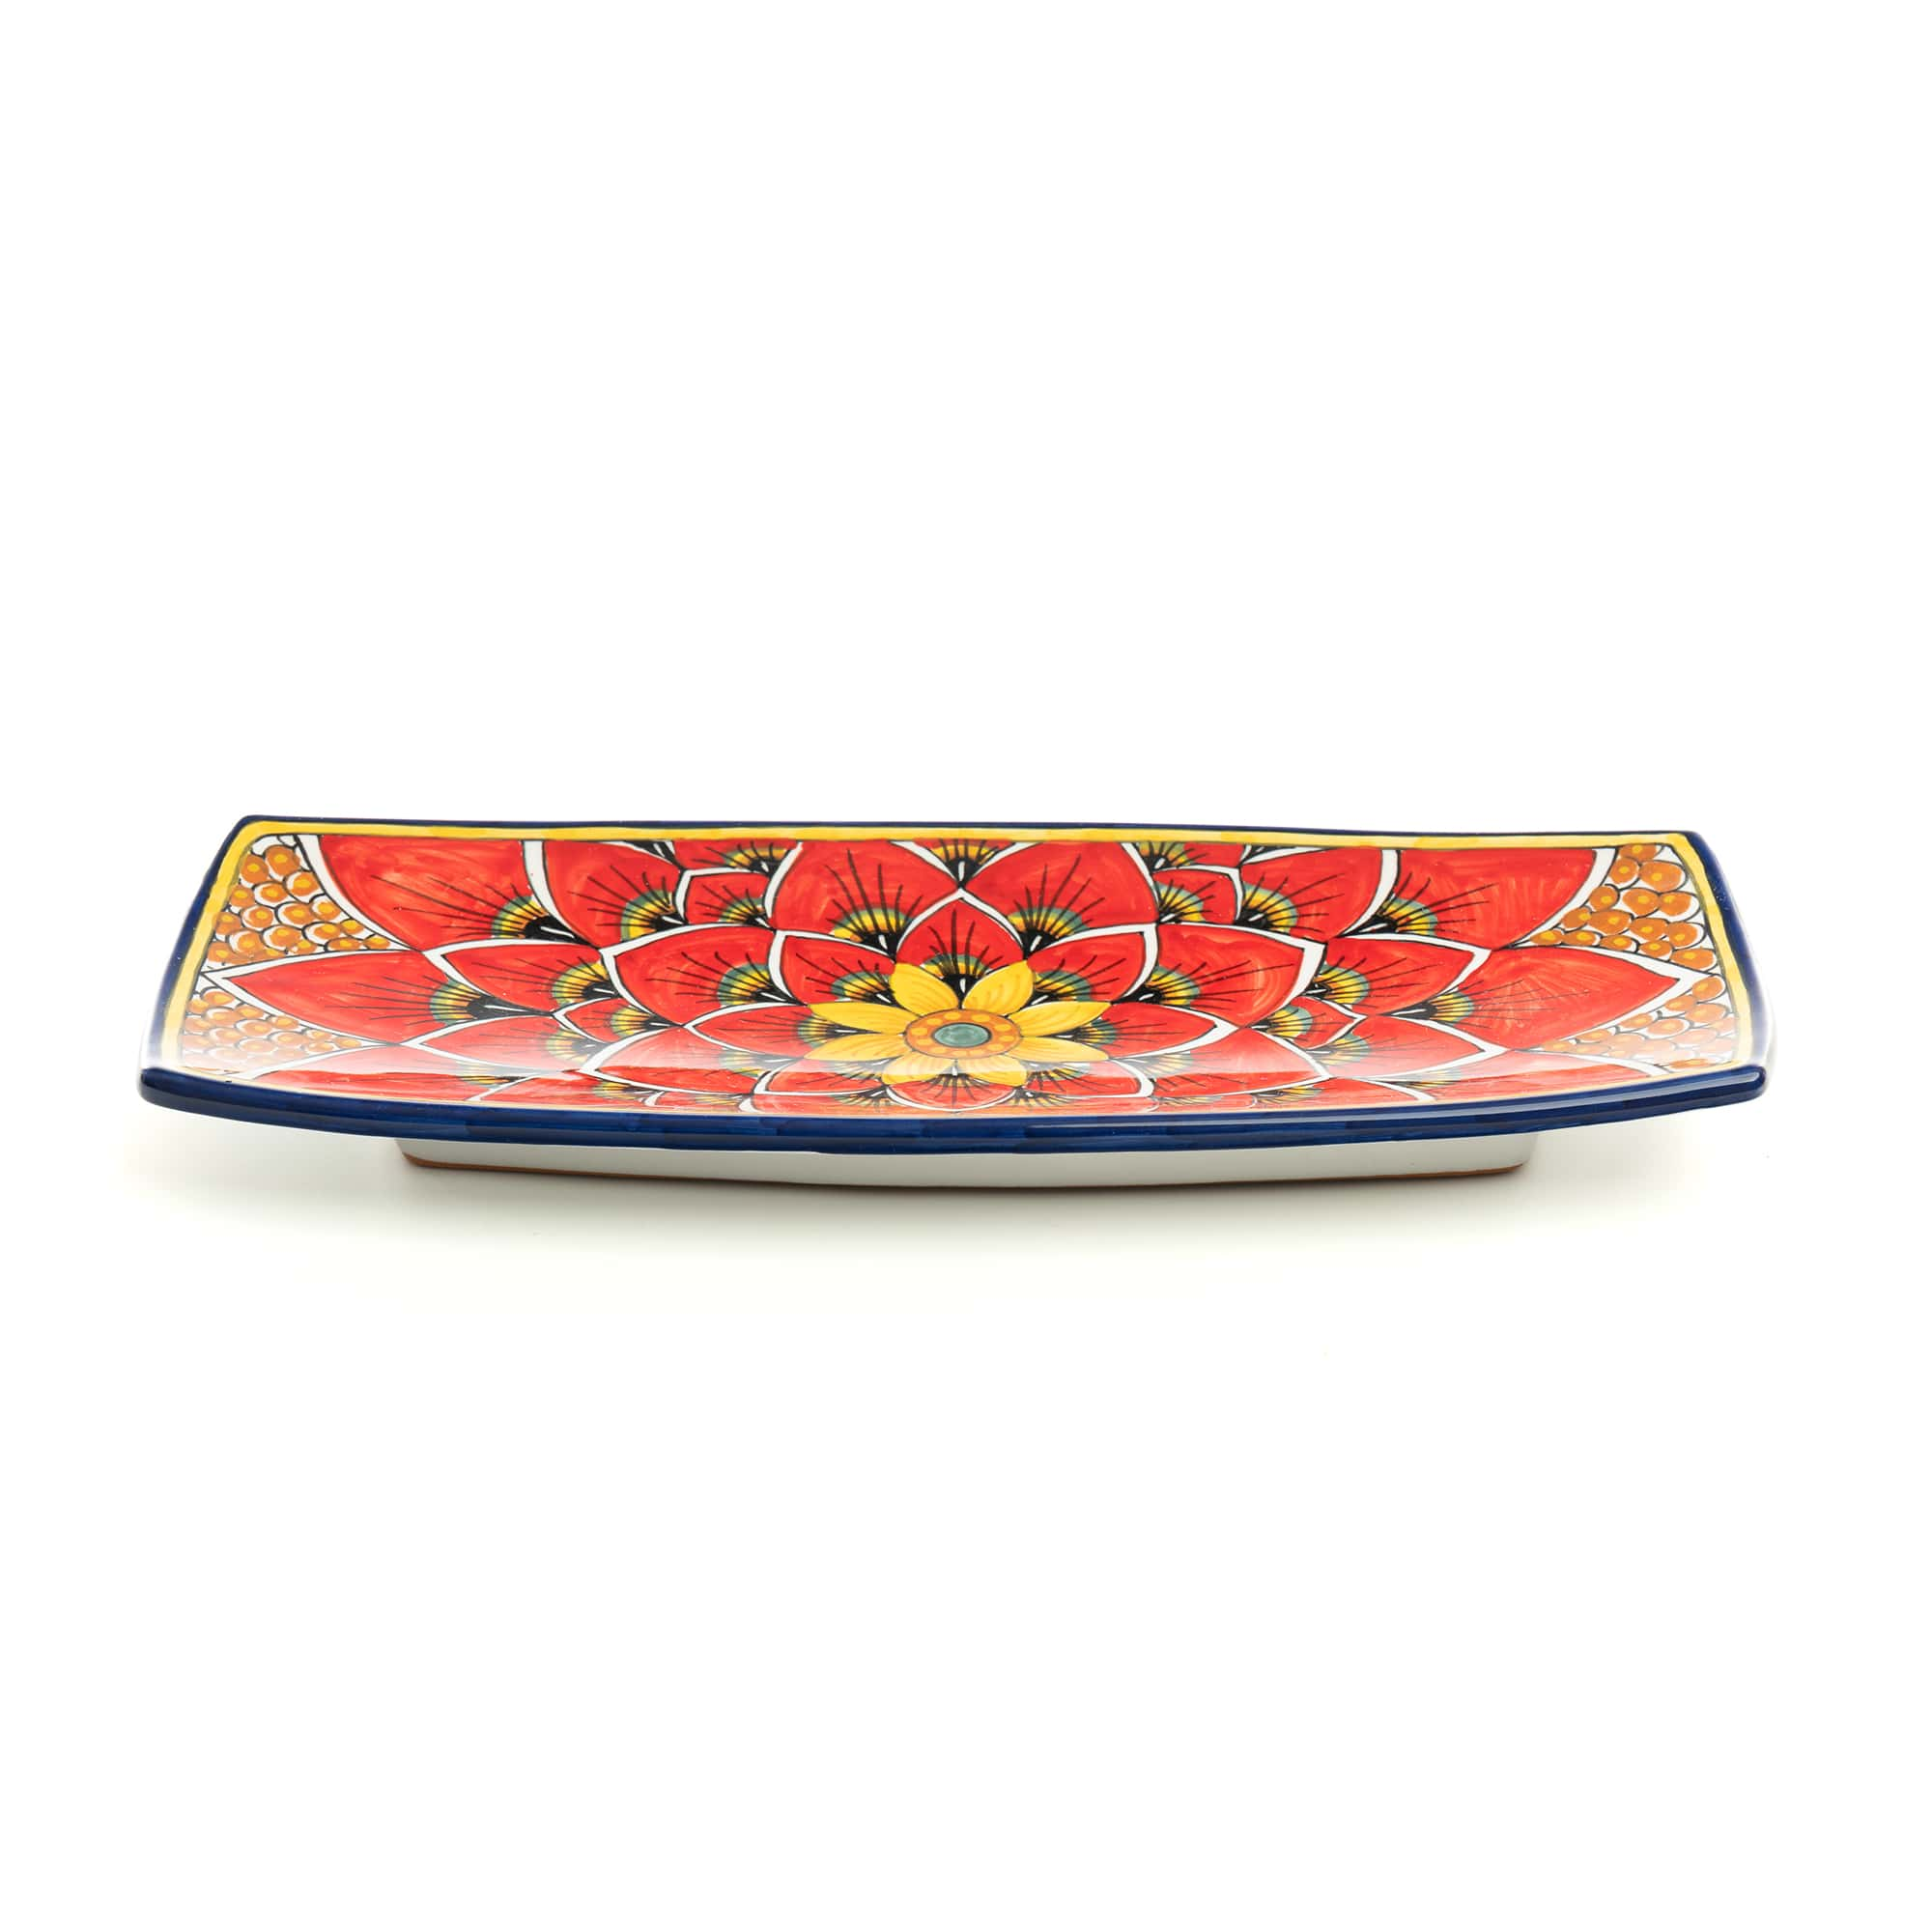 Rectangular Rounded Tray PG04 in Red Peacock Design